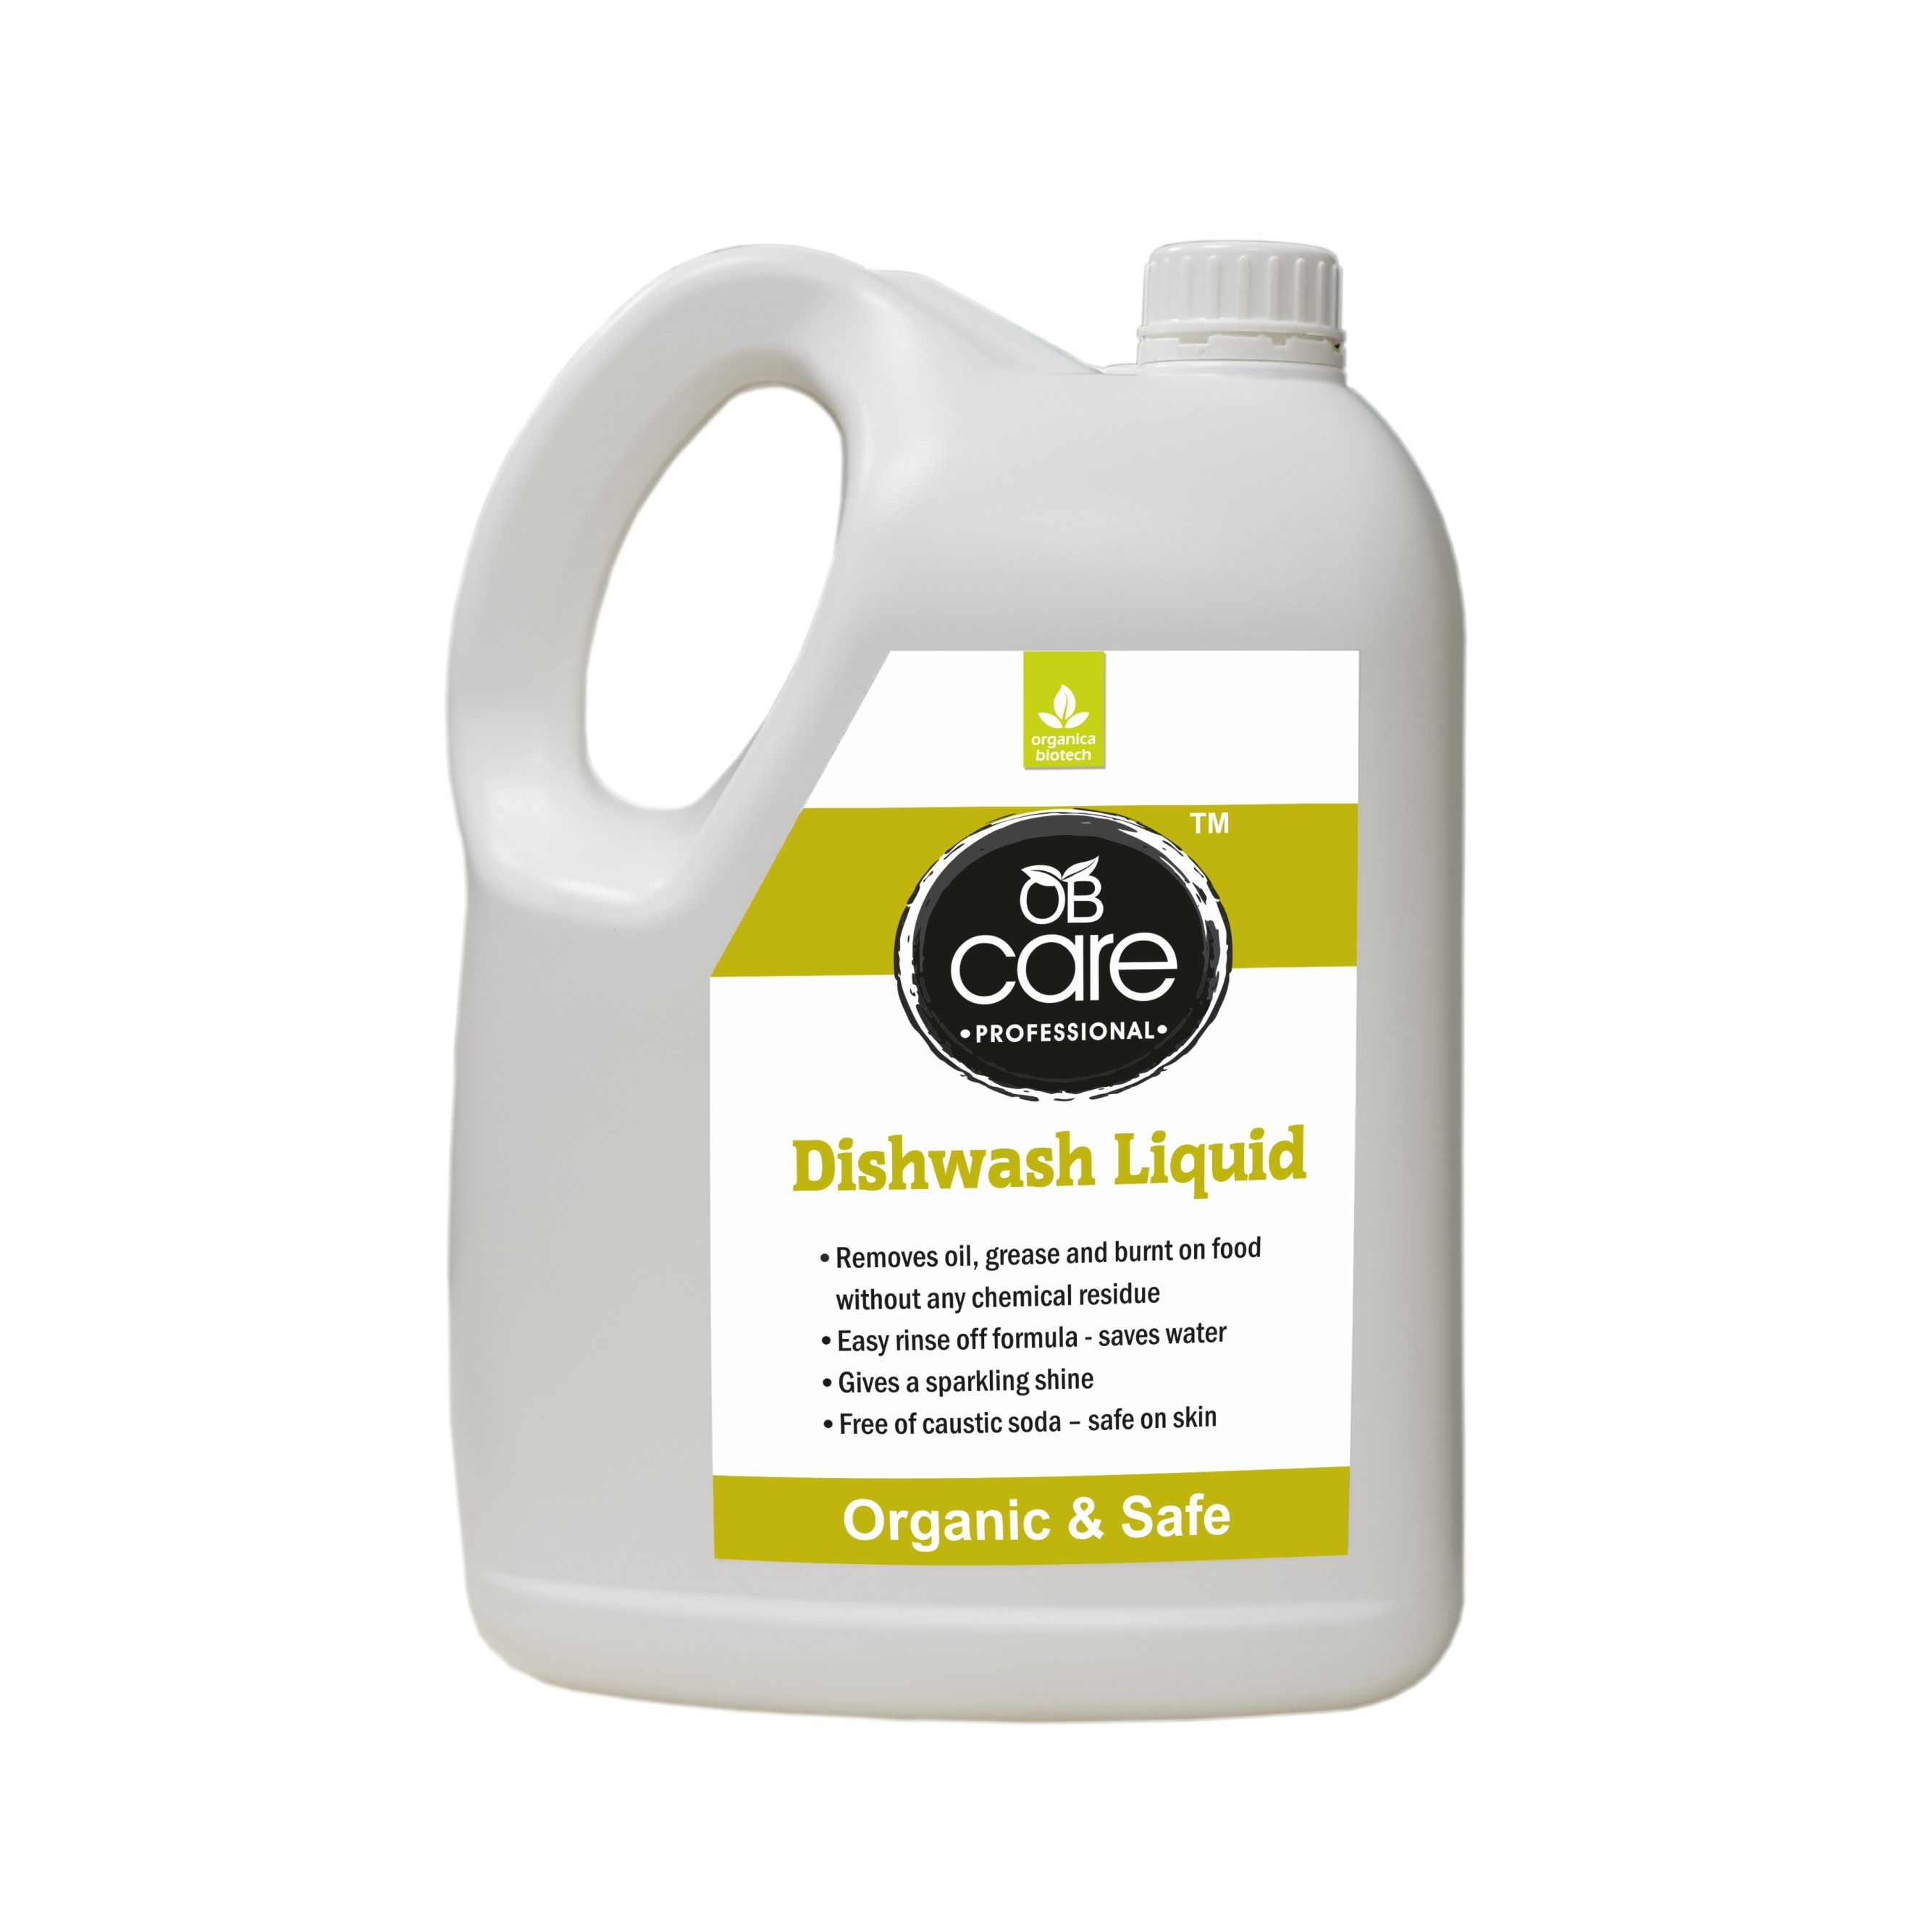 Dishwasher gel liquid for clean and sparkling utensils